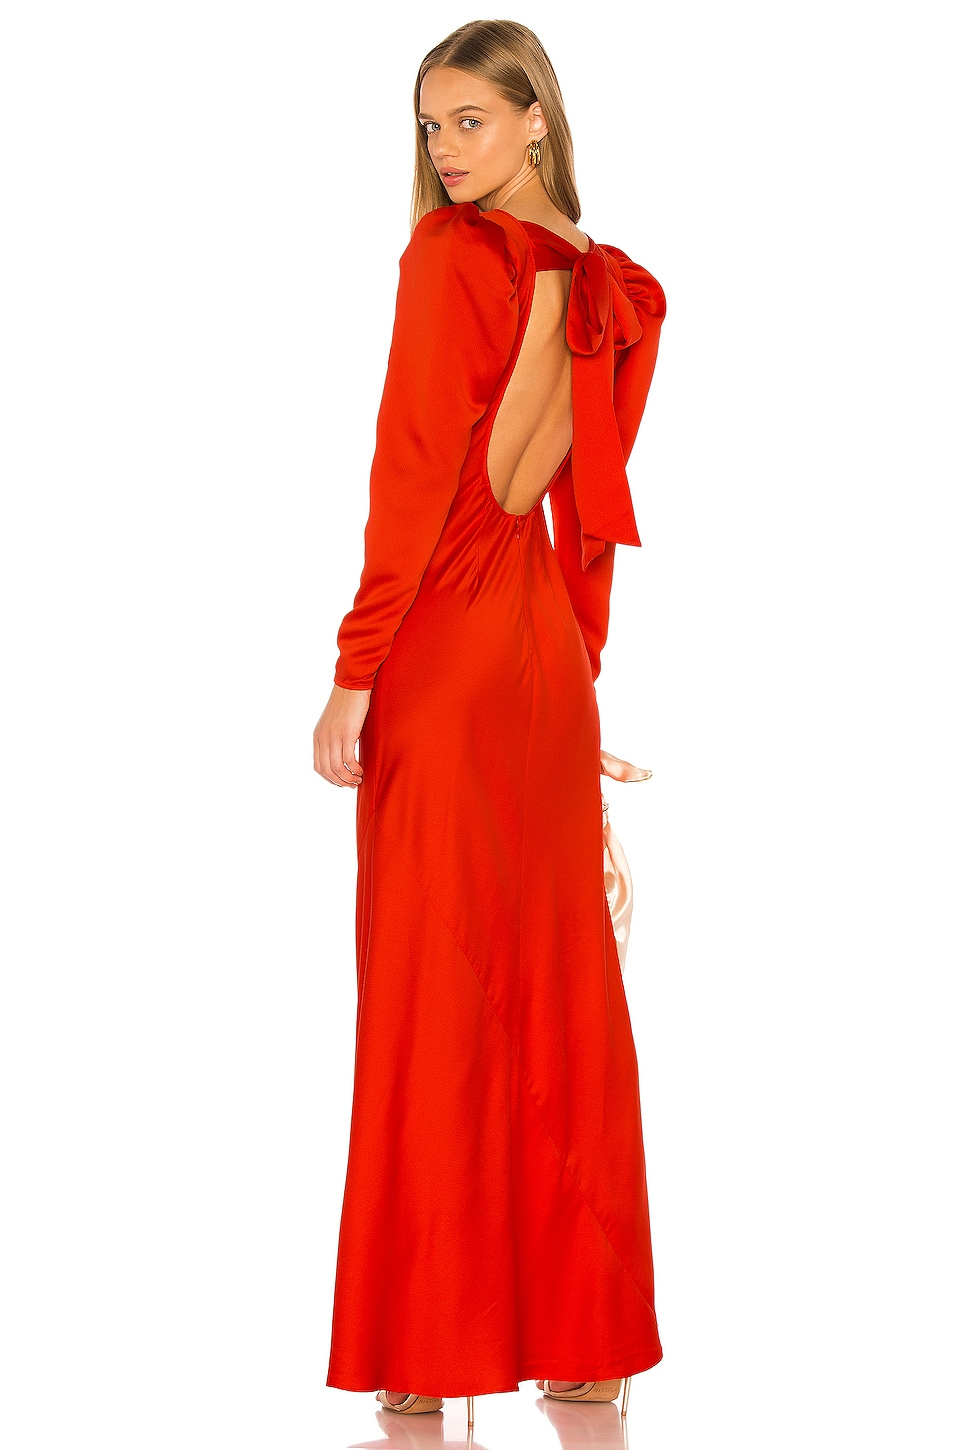 L'Academie The Joelene Gown in Fiery Red